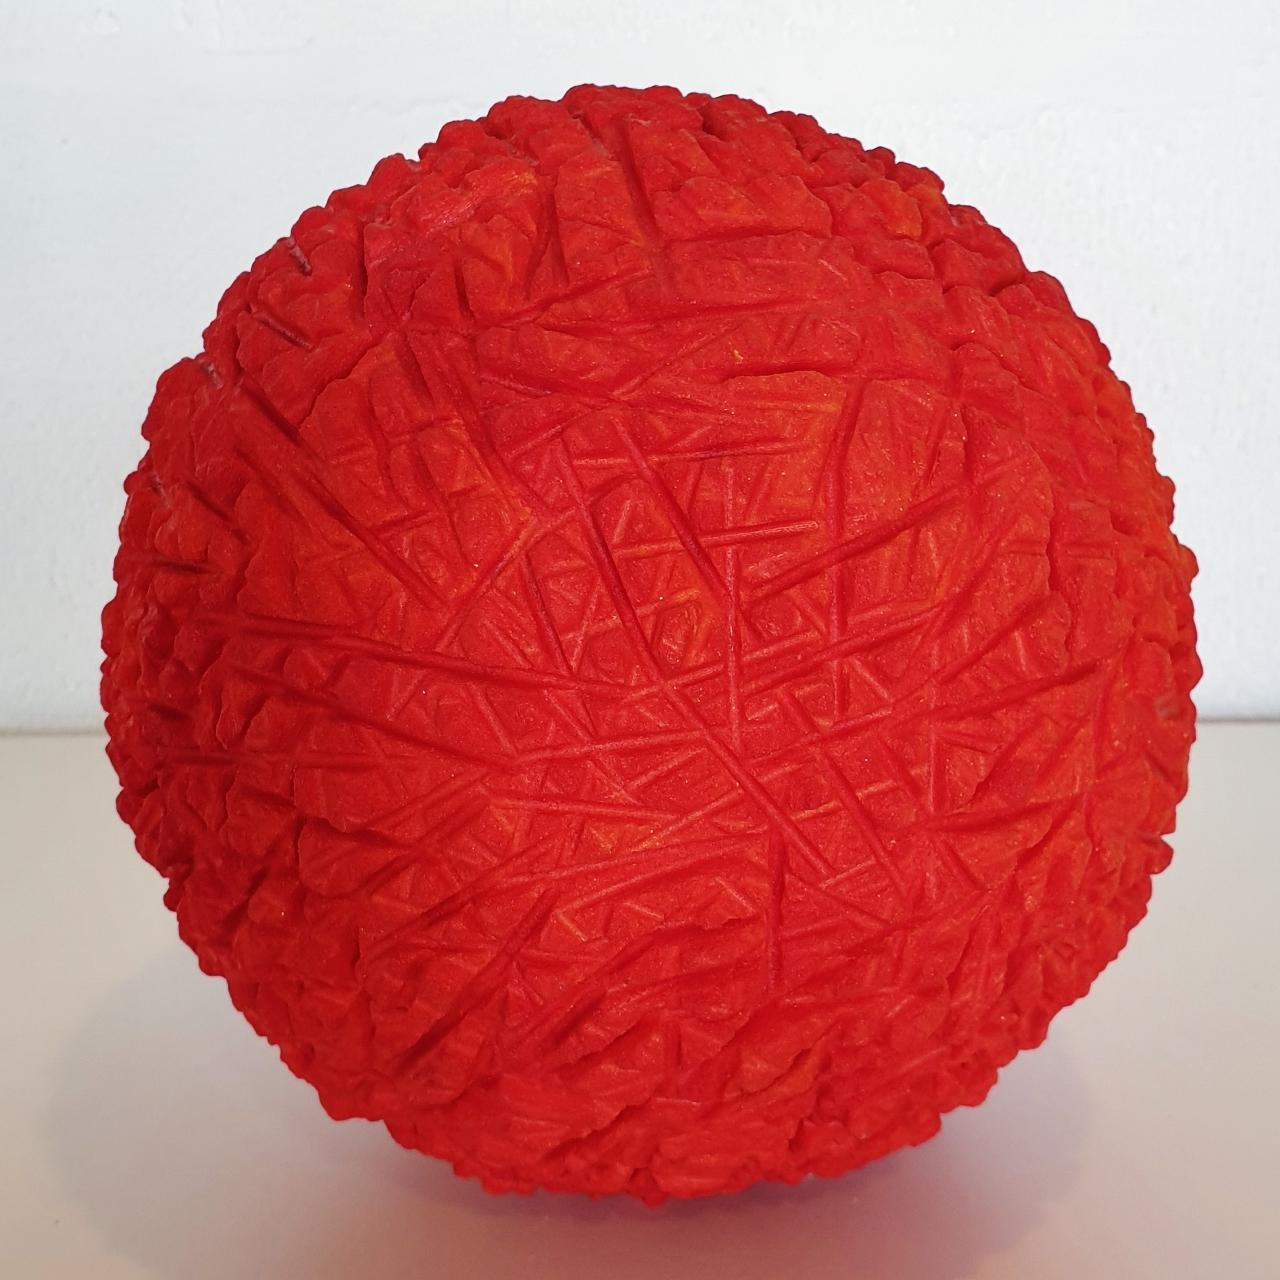 o.T. orange rot - contemporary modern abstract organic sculpture